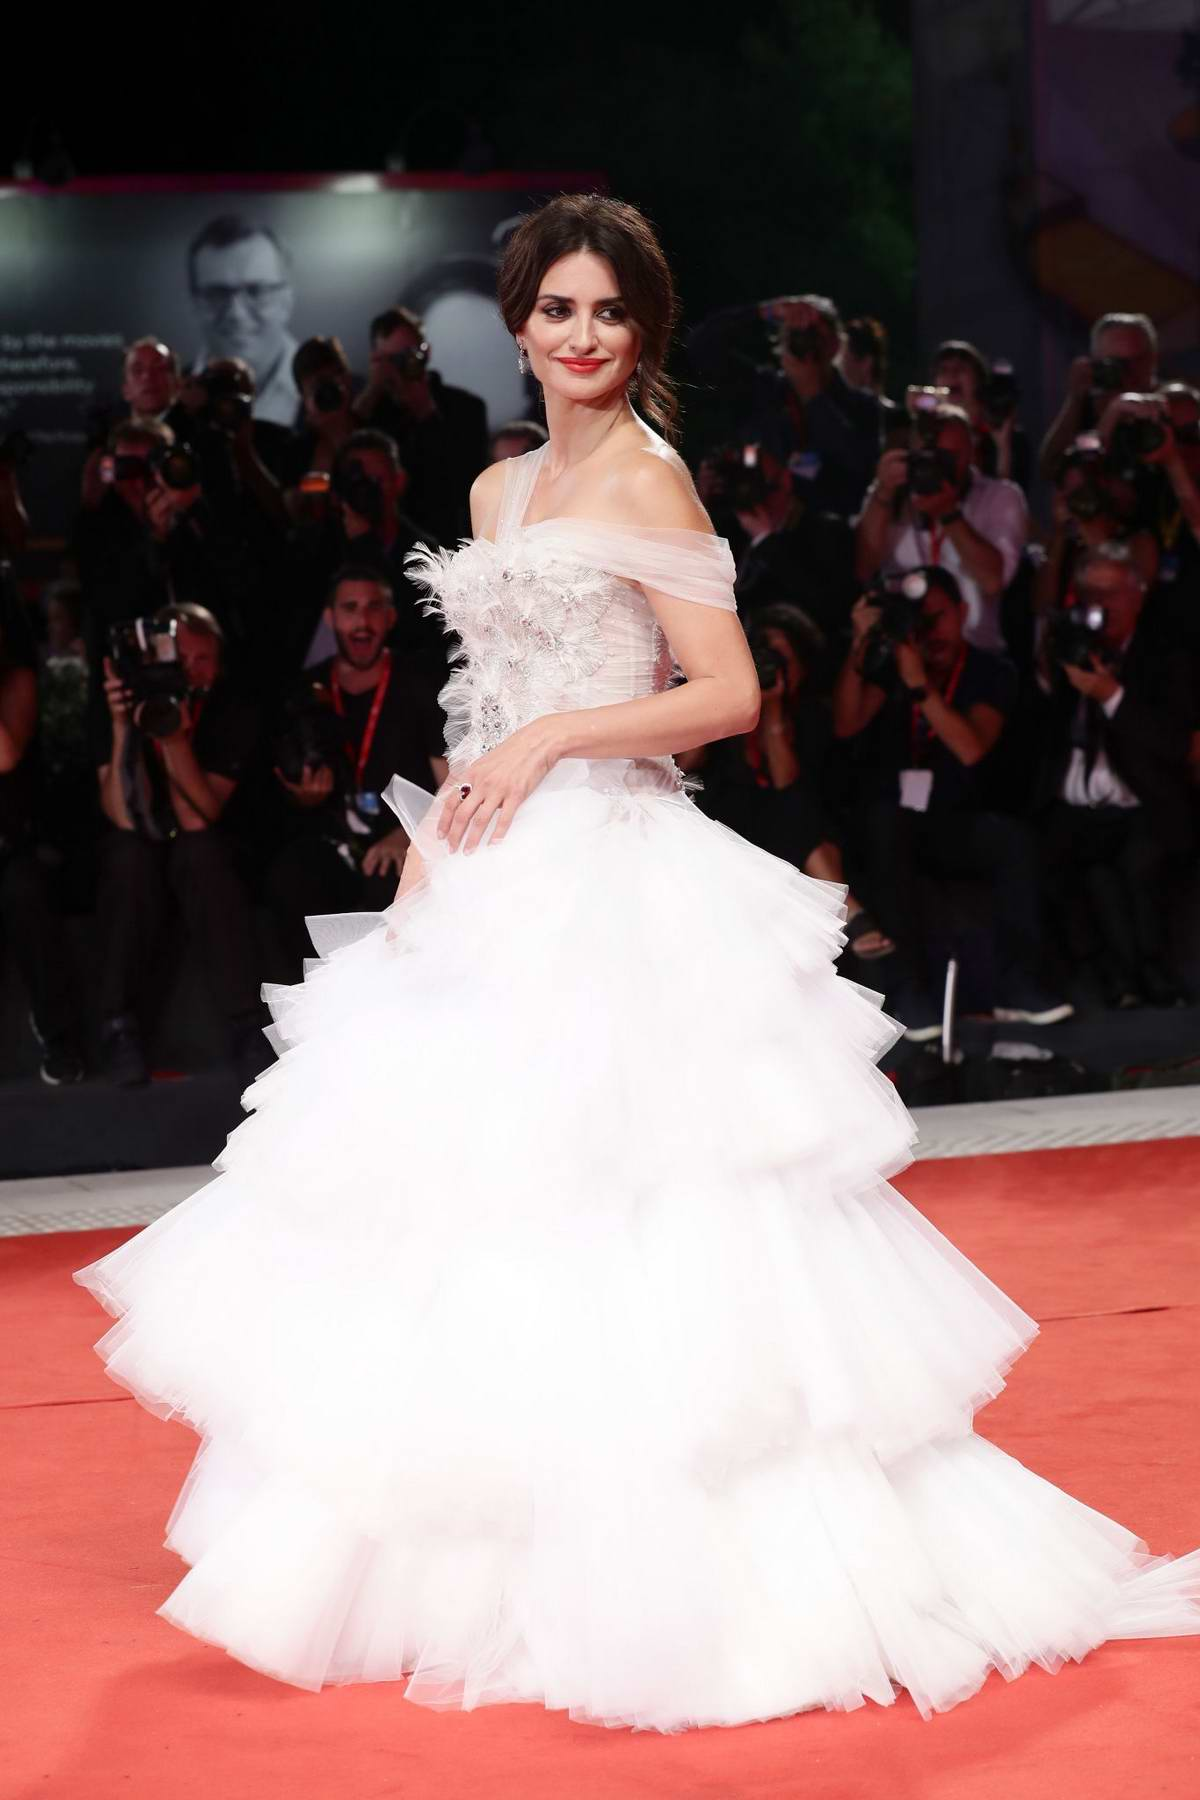 Penelope Cruz attends 'Wasp Network' Screening during the 76th Venice Film Festival at Sala Grande in Venice, Italy